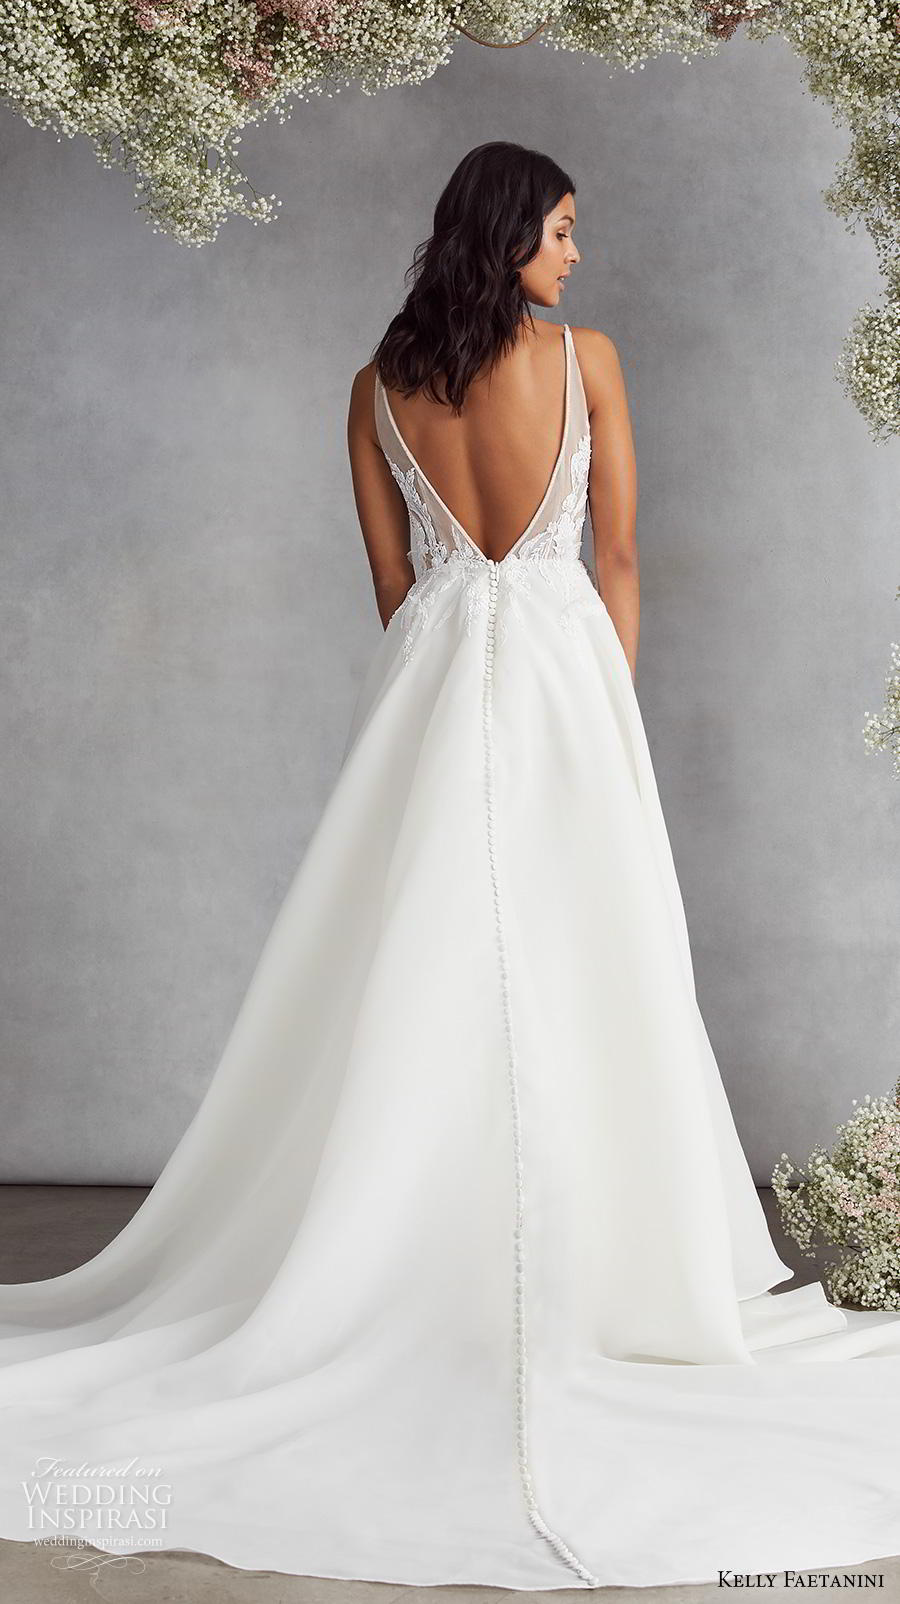 kelly faetanini fall 2020 bridal sleeveless thin strap deep plunging sweetheart neckline heavily embellished bodice romantic a  line wedding dress backless v back chapel train (7) bv